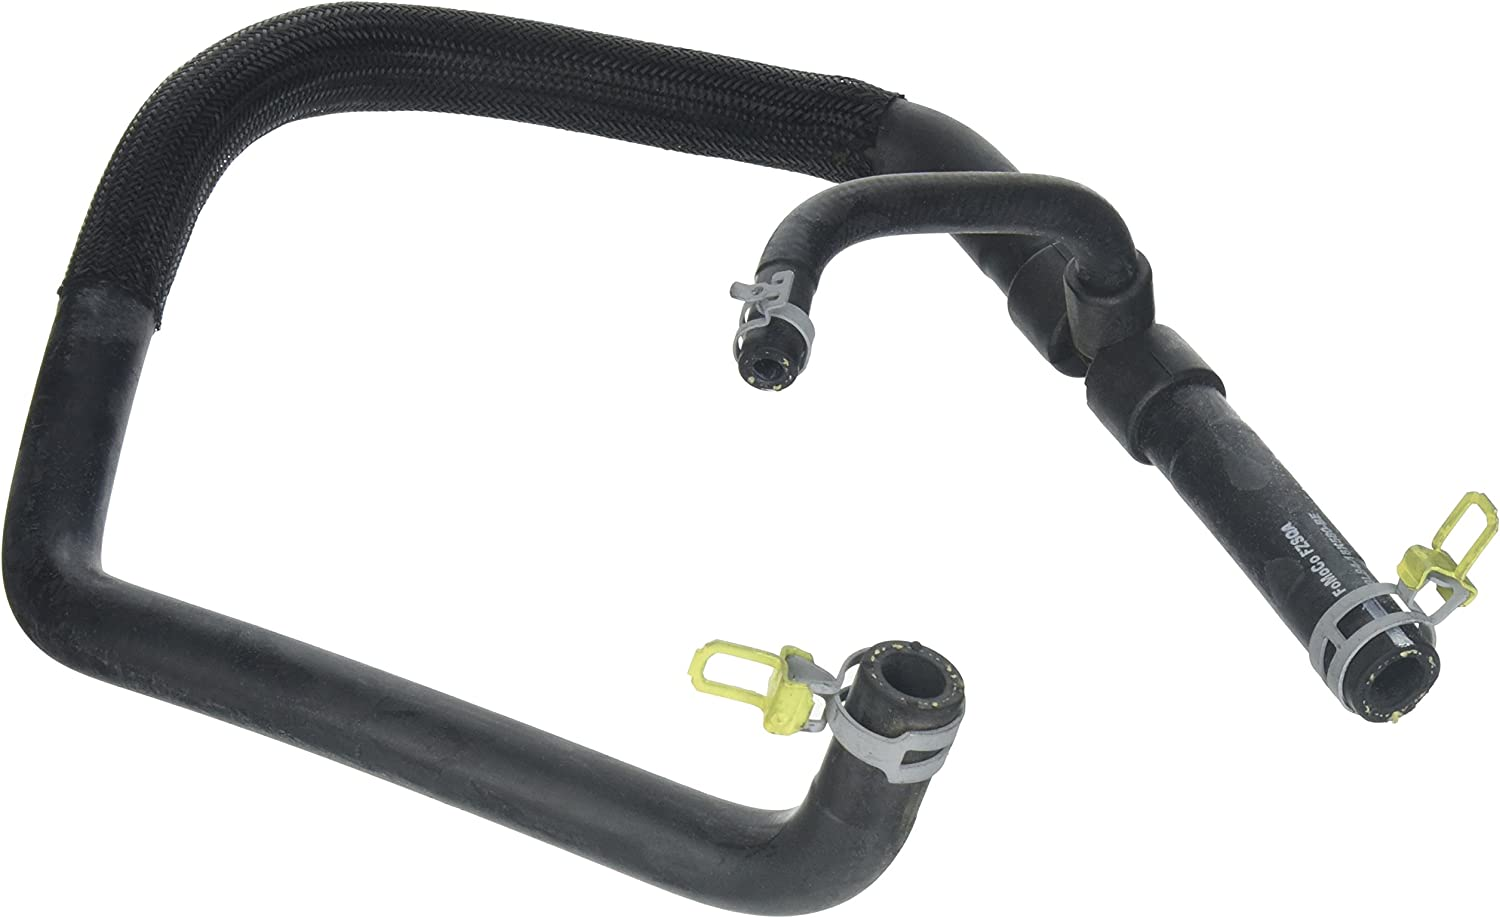 Motorcraft KH-391 HVAC Heater Hose